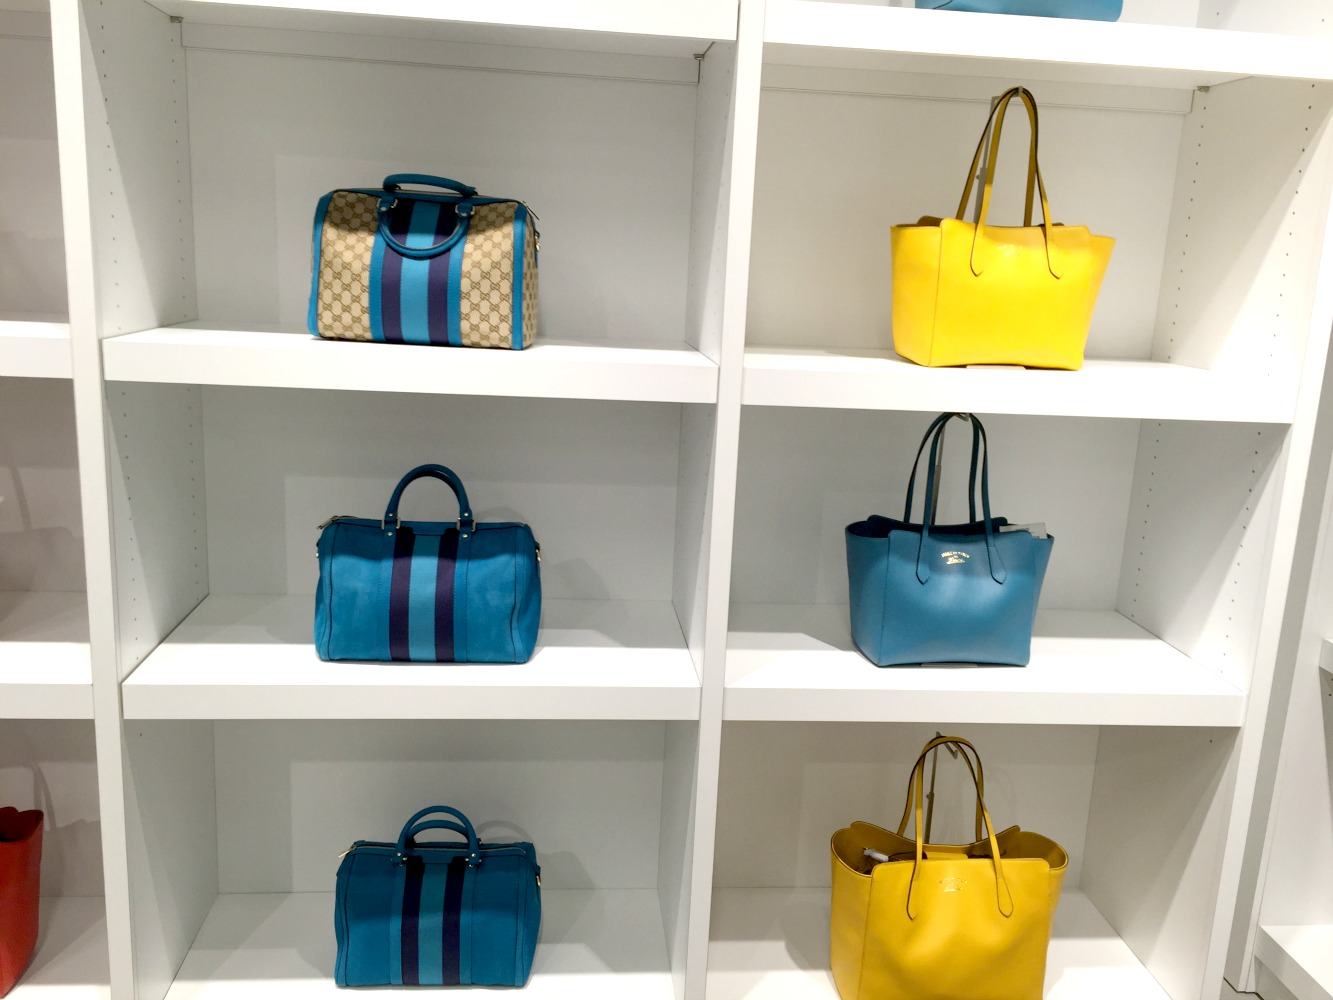 Gucci-Mirabel outlet-Montreal-pures